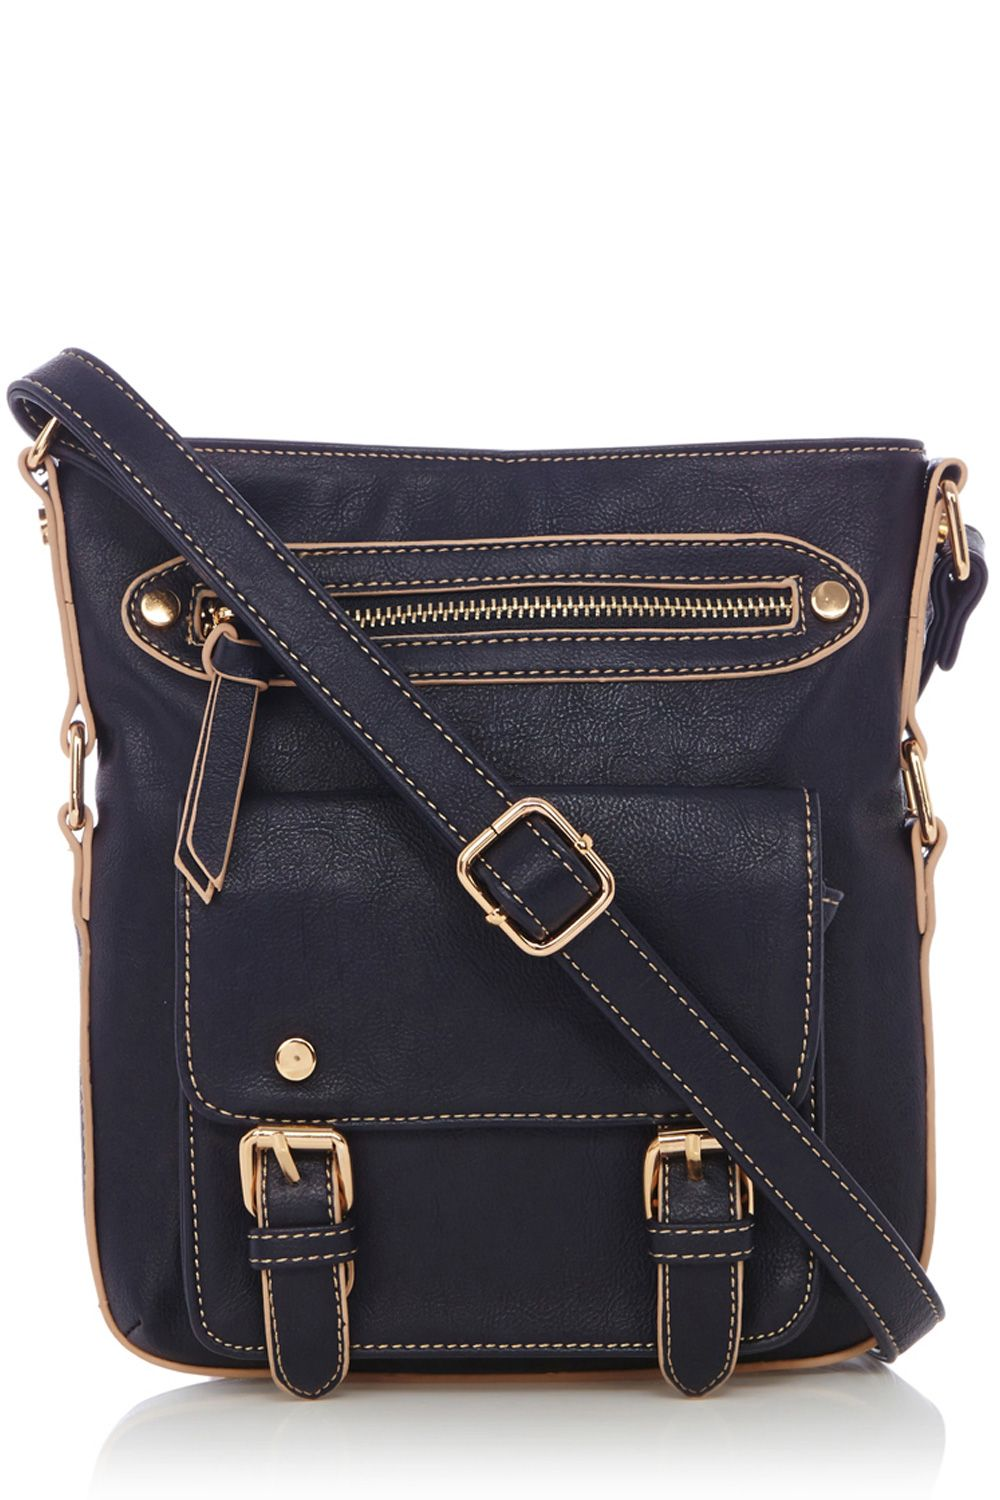 Emily cross body bag